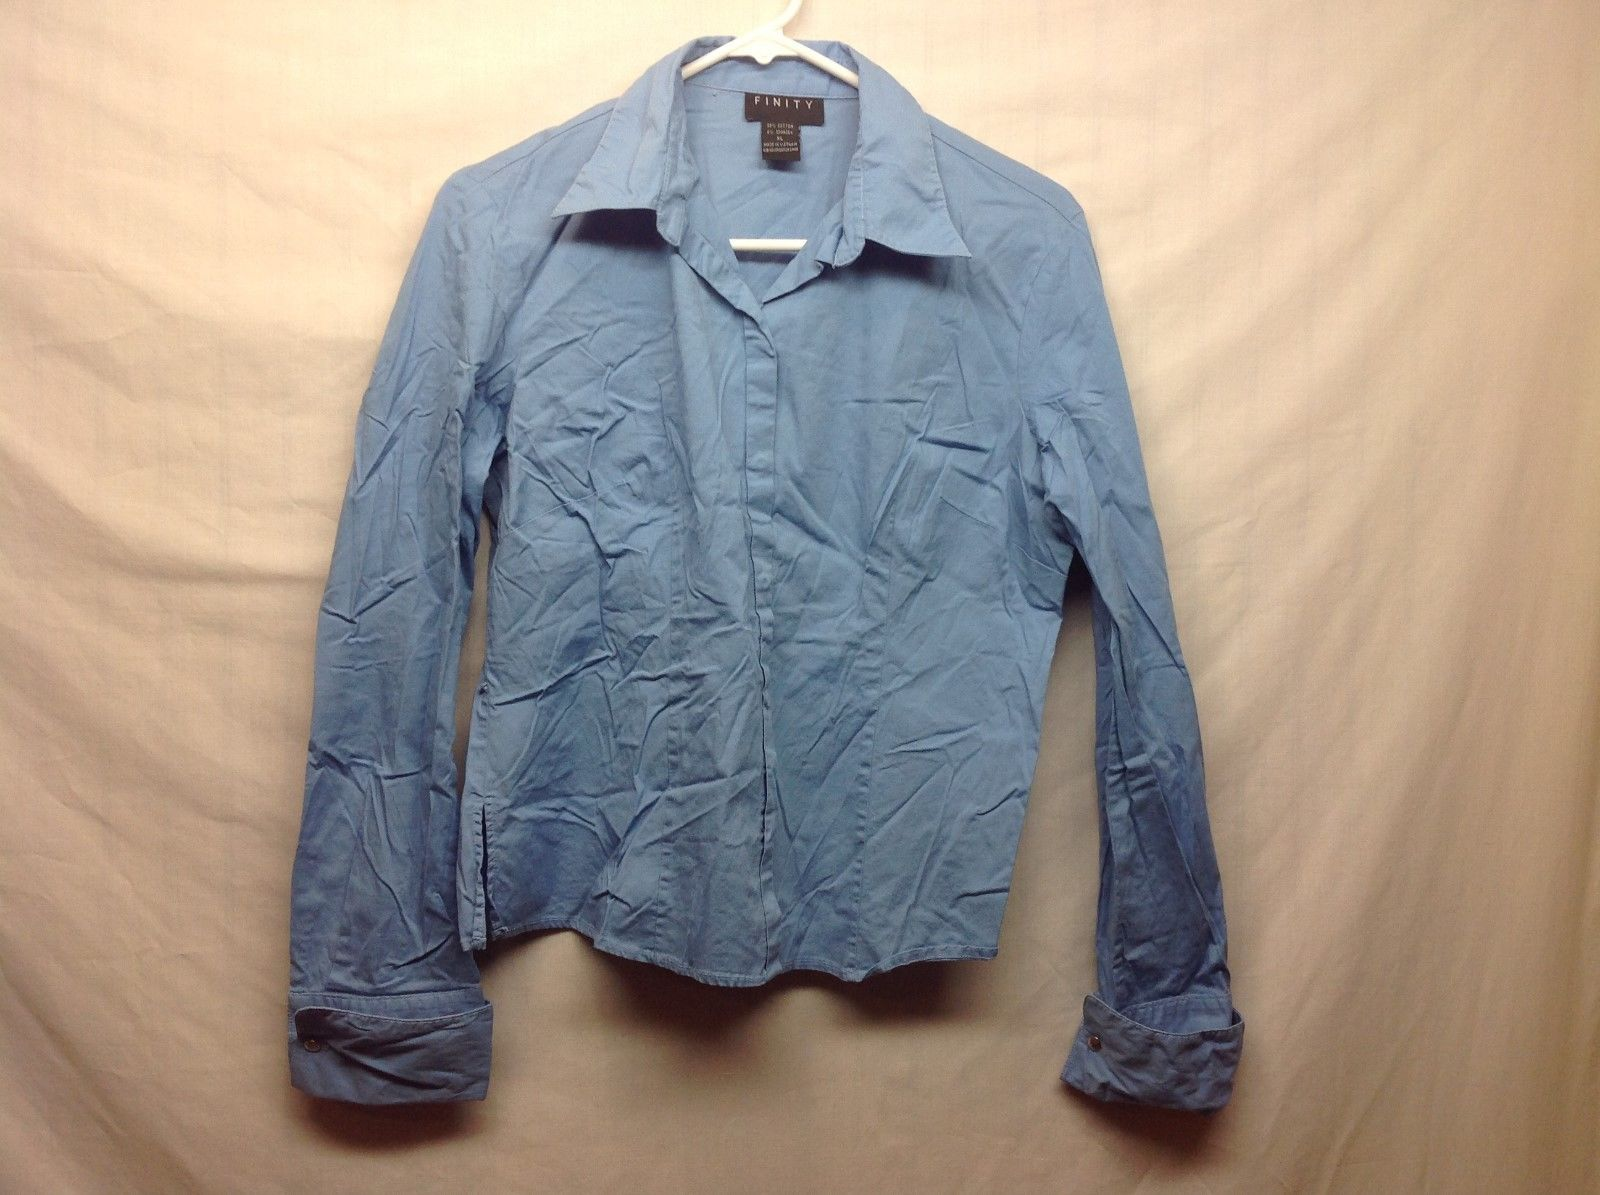 Finity Soft Blue Long Sleeve Collared Cuffed Button Up Shirt Sz XL